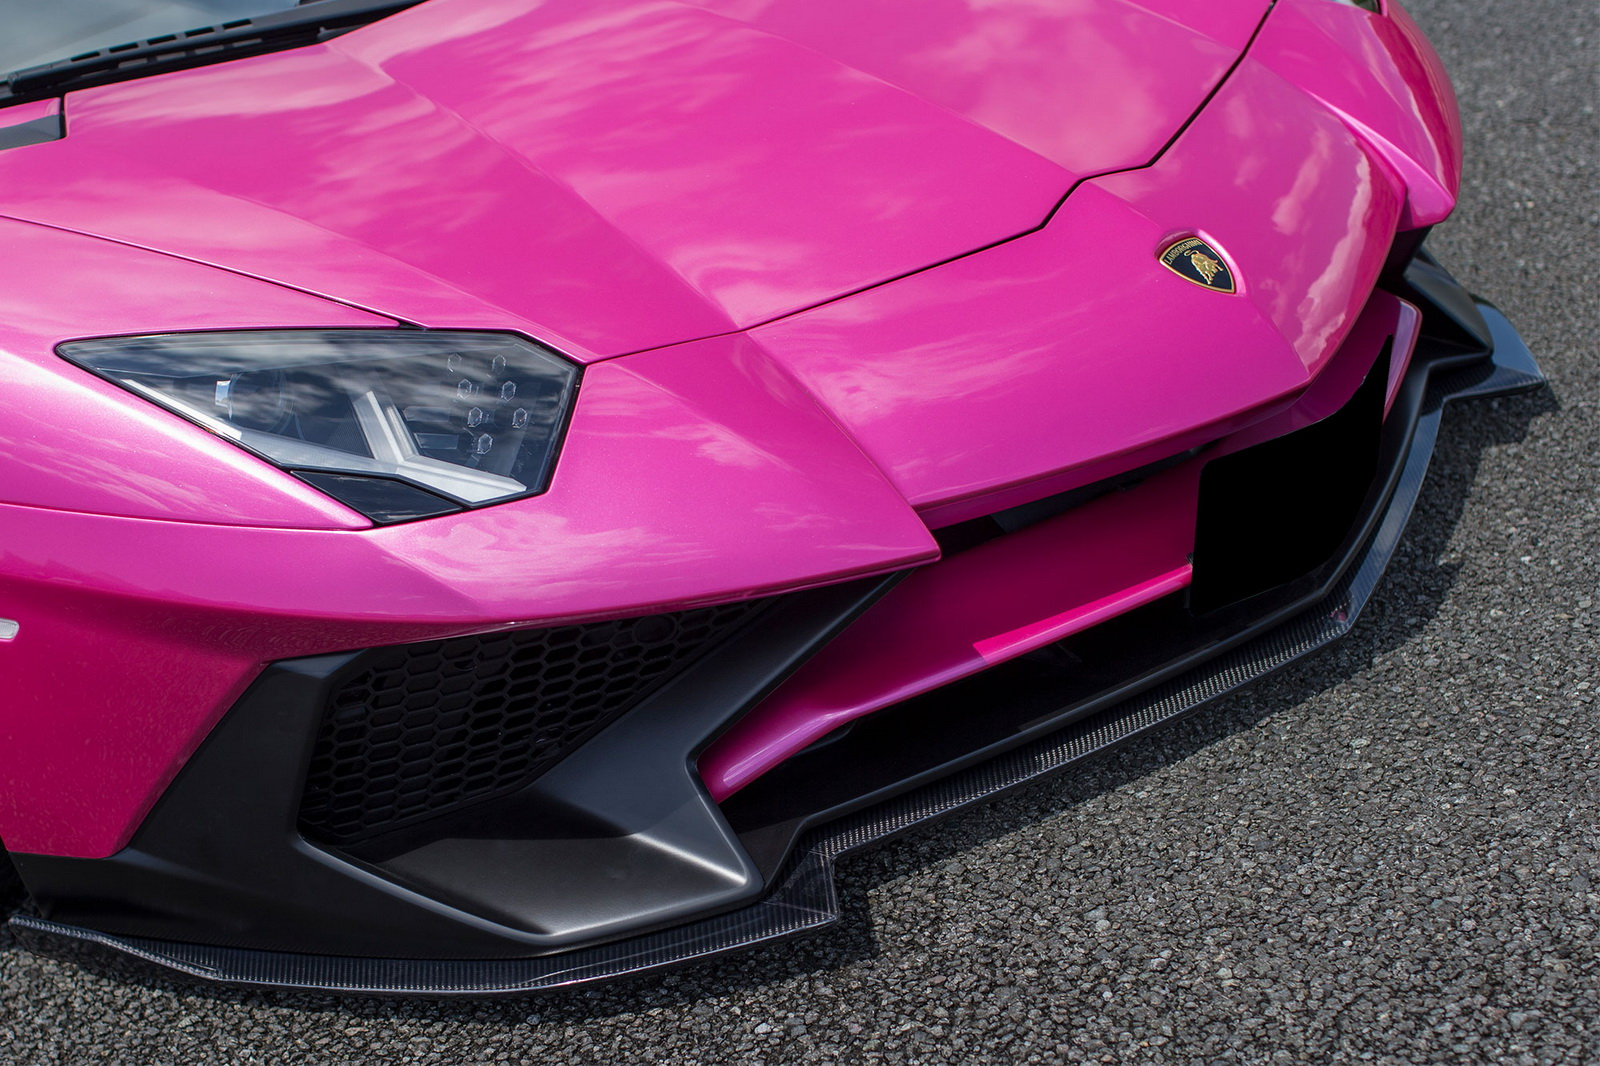 Lamborghini_Aventador_SV_by_Liberty_Walk_03